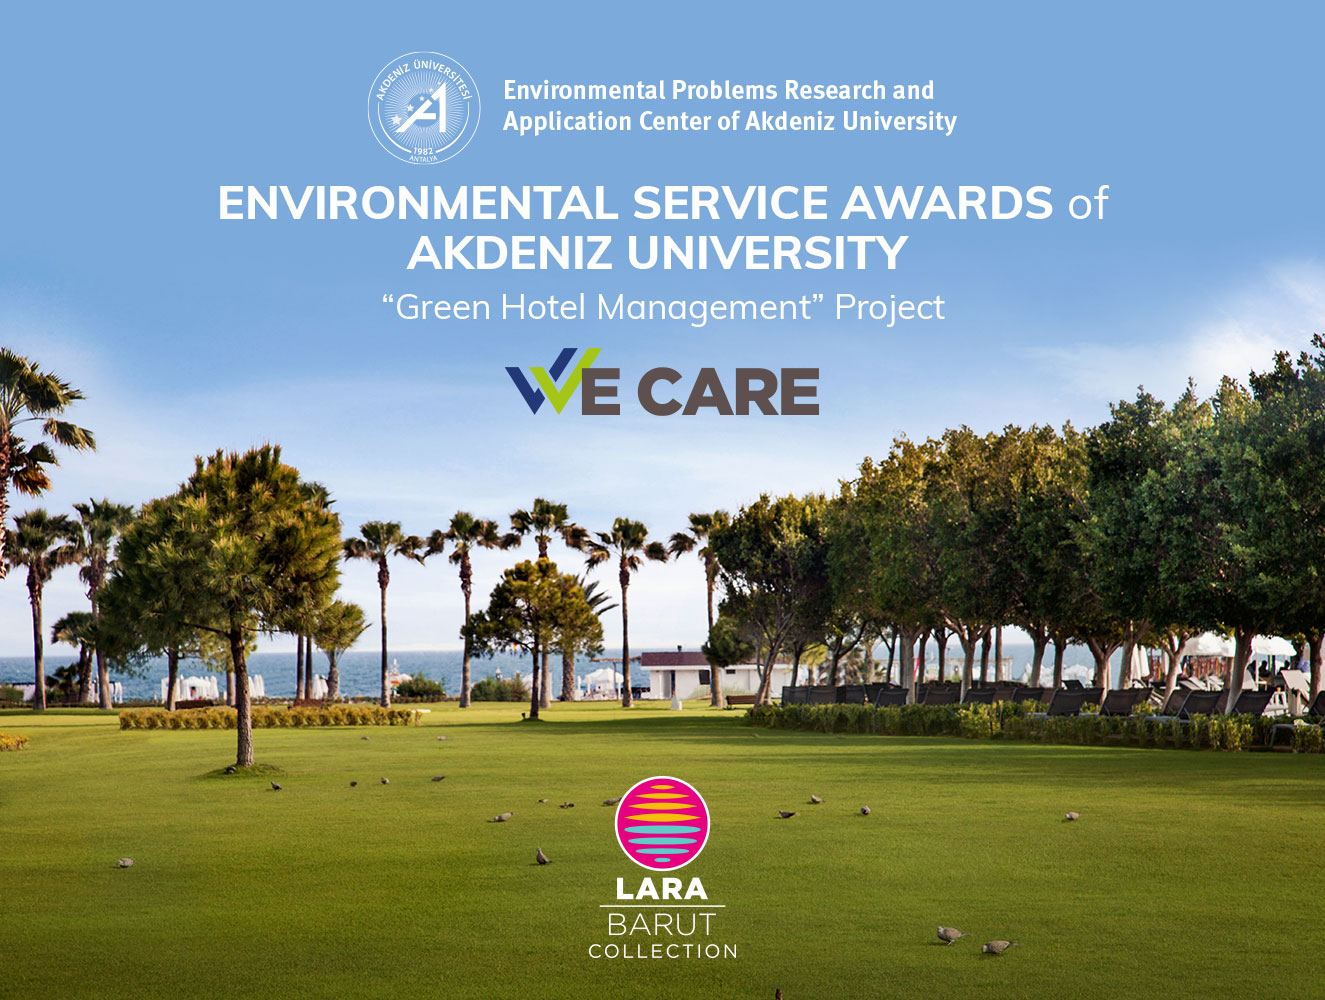 Lara Barut Collection Has Received The ''Green Hotel Management'' Award.